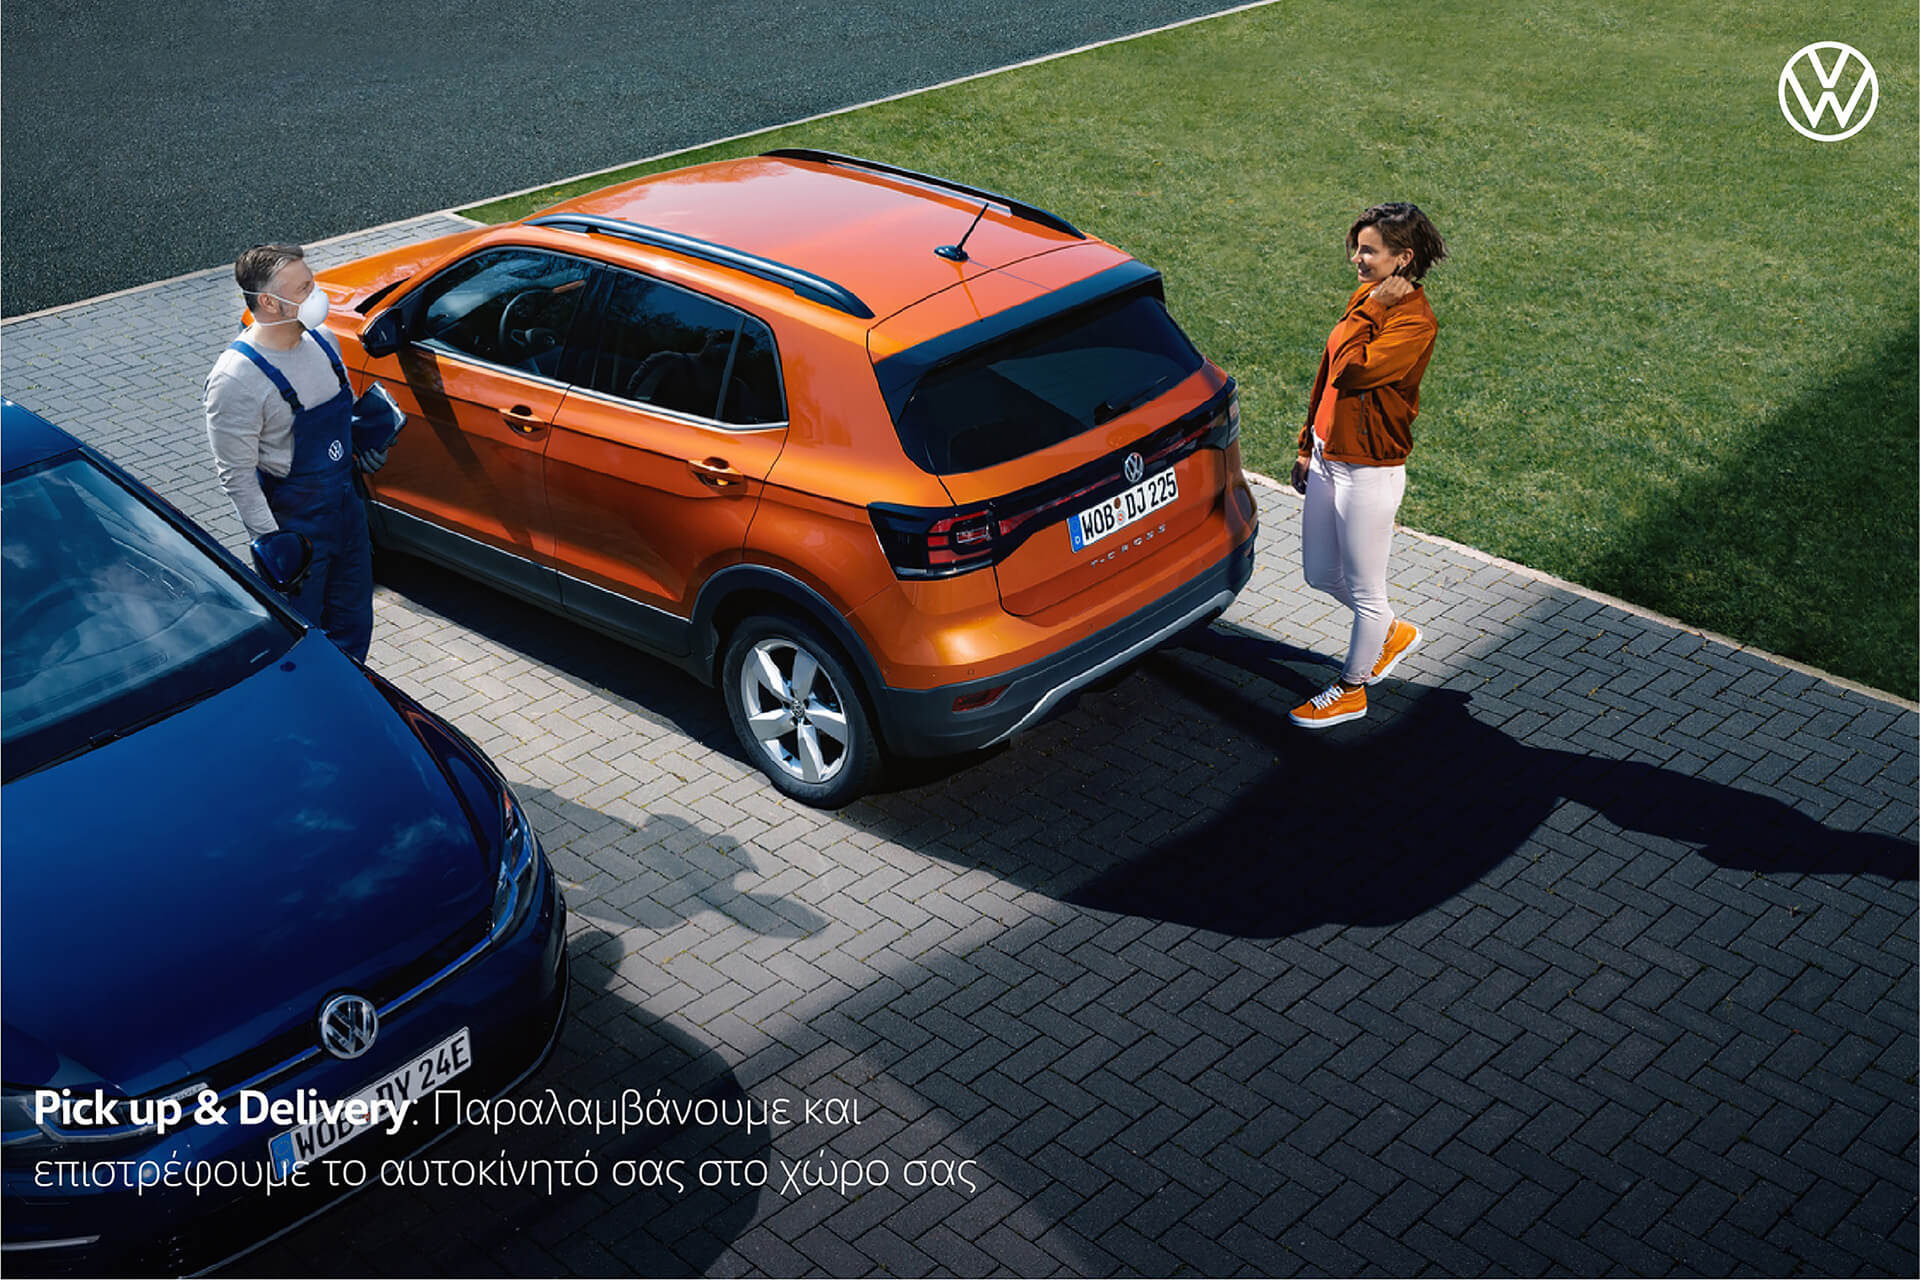 Volkswagen After Sales - Υπηρεσία Pick up & Delivery